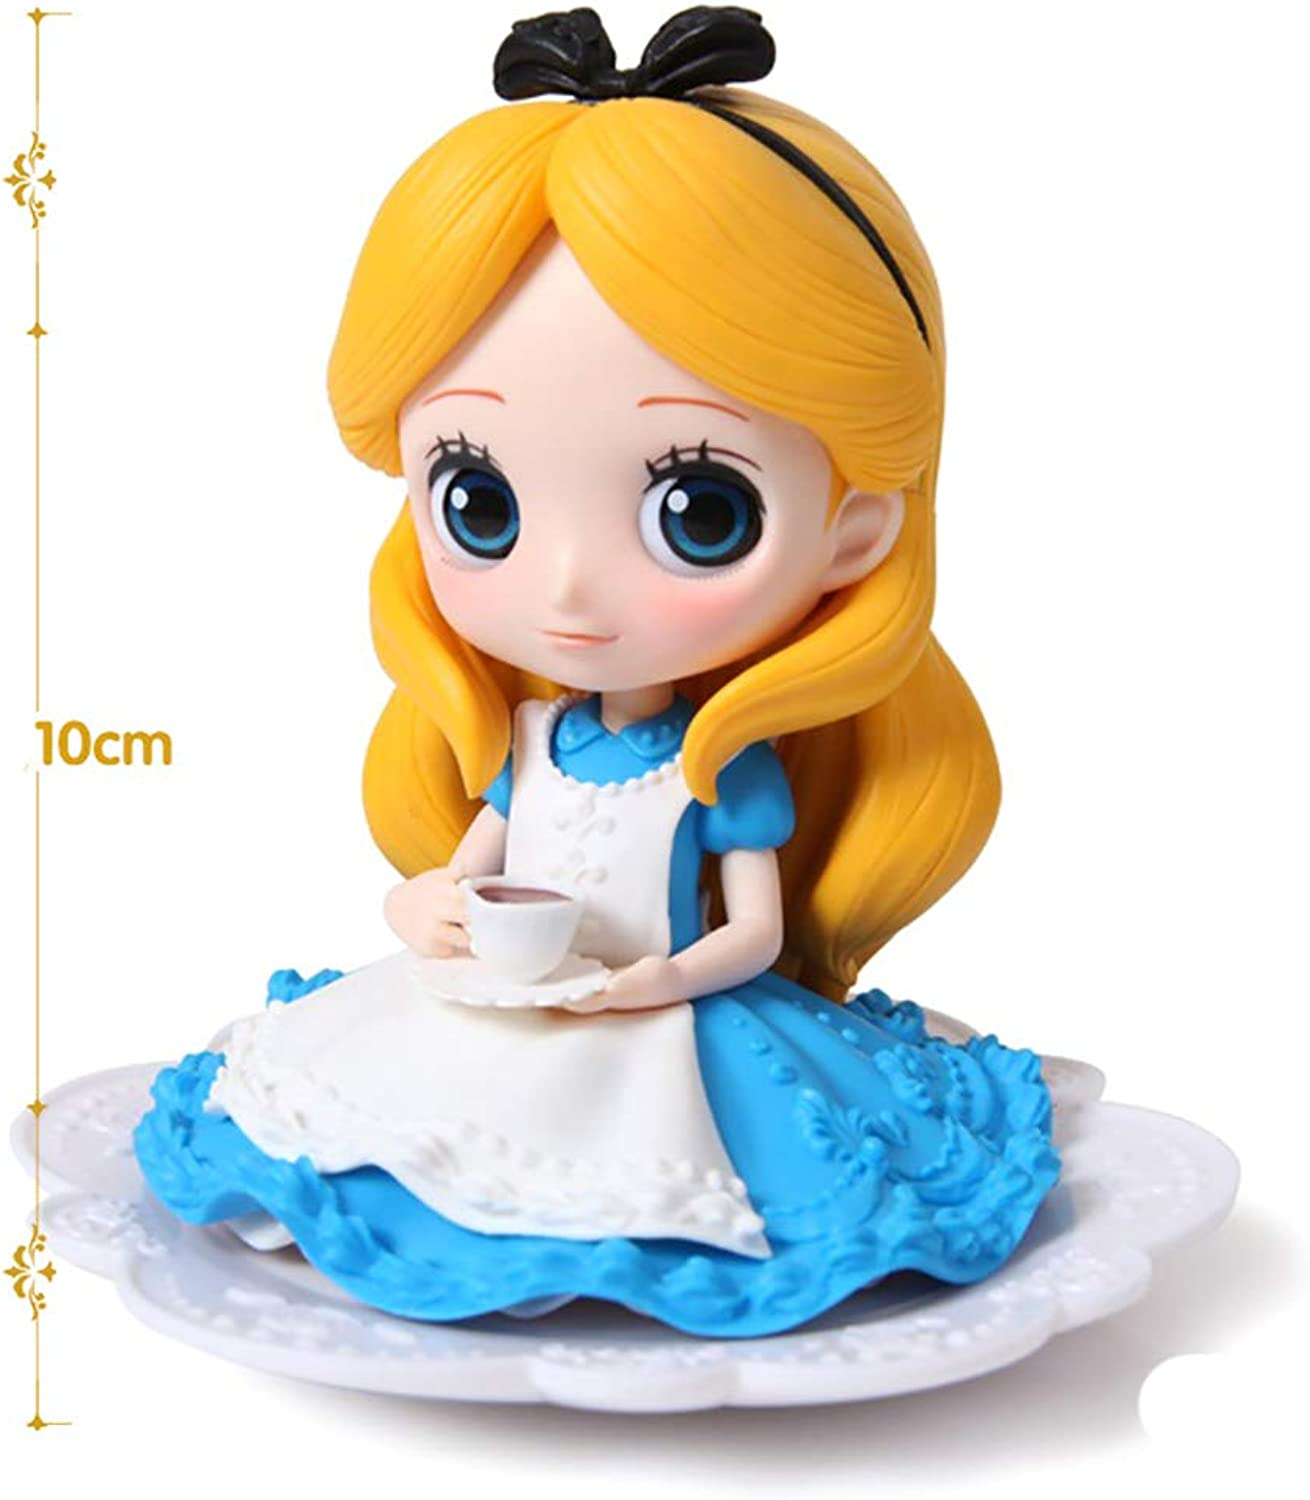 KUHU Anime Doll Cartoon Character Action Figures Model Doll Gift Girl Hand Collection Car Decoration Decoration bluee